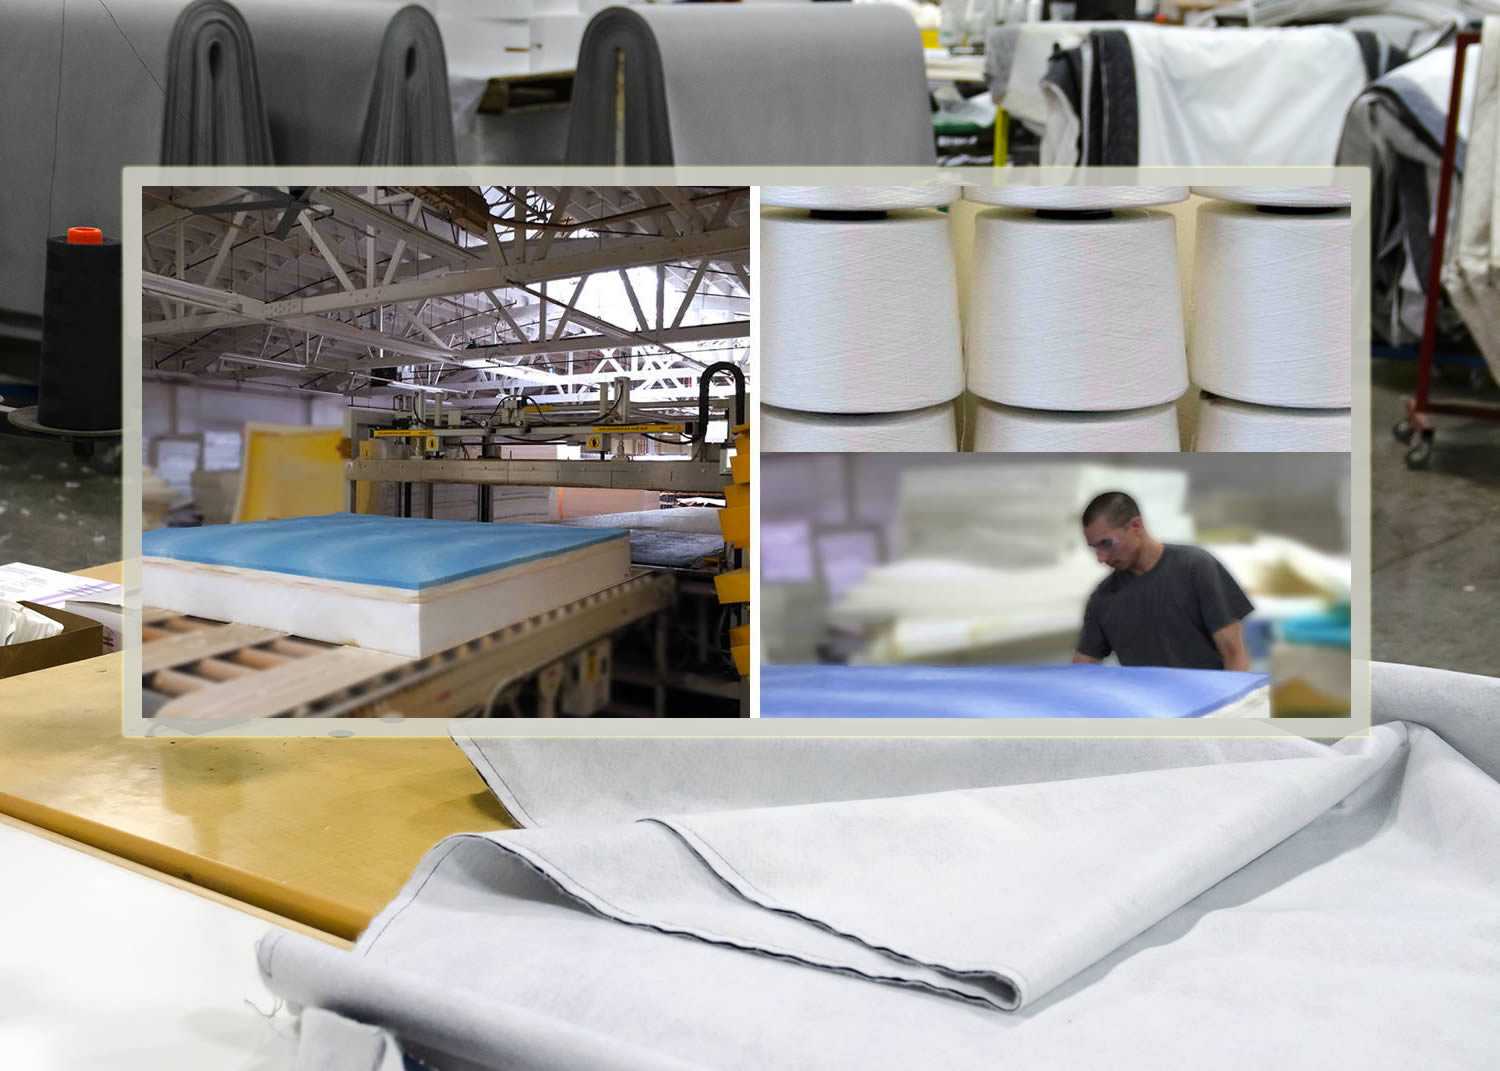 Making the FIN10 Mattress. All Fin mattresses are made in the USA. tHE MEMORY FOAM LATEX AND POCKET SPRINGS ARE 100% made in America. tHERE ARE NO FOREIGN COMPONENTS that GO INTO THE MANUFACTURE OF A FIN mattress